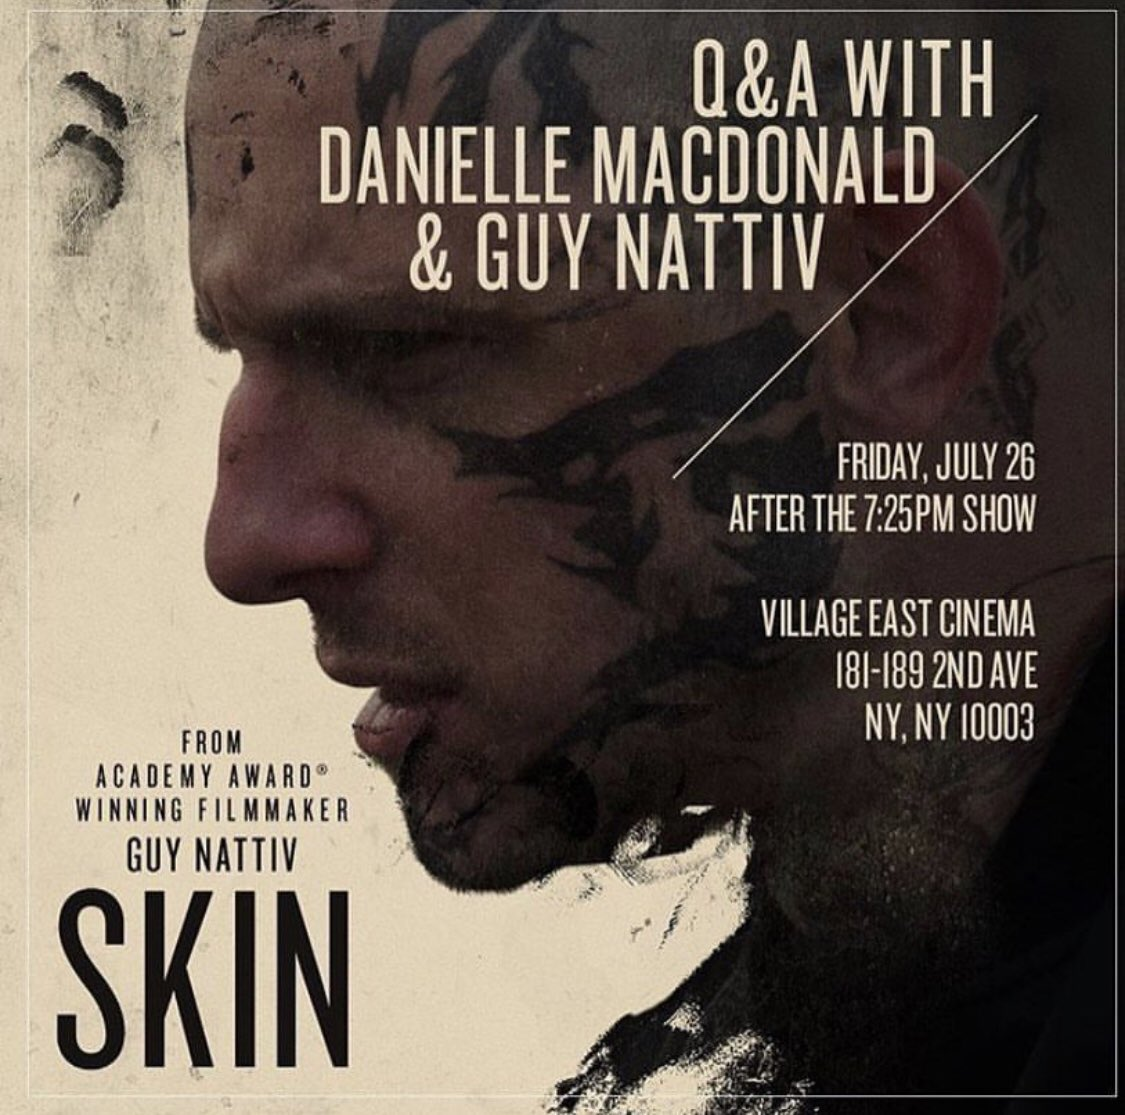 July 26! Opening weekend of SKIN THE FEATURE in LA (at The Royal) and NYC (Village East) https://t.co/x5wnOuEmYY